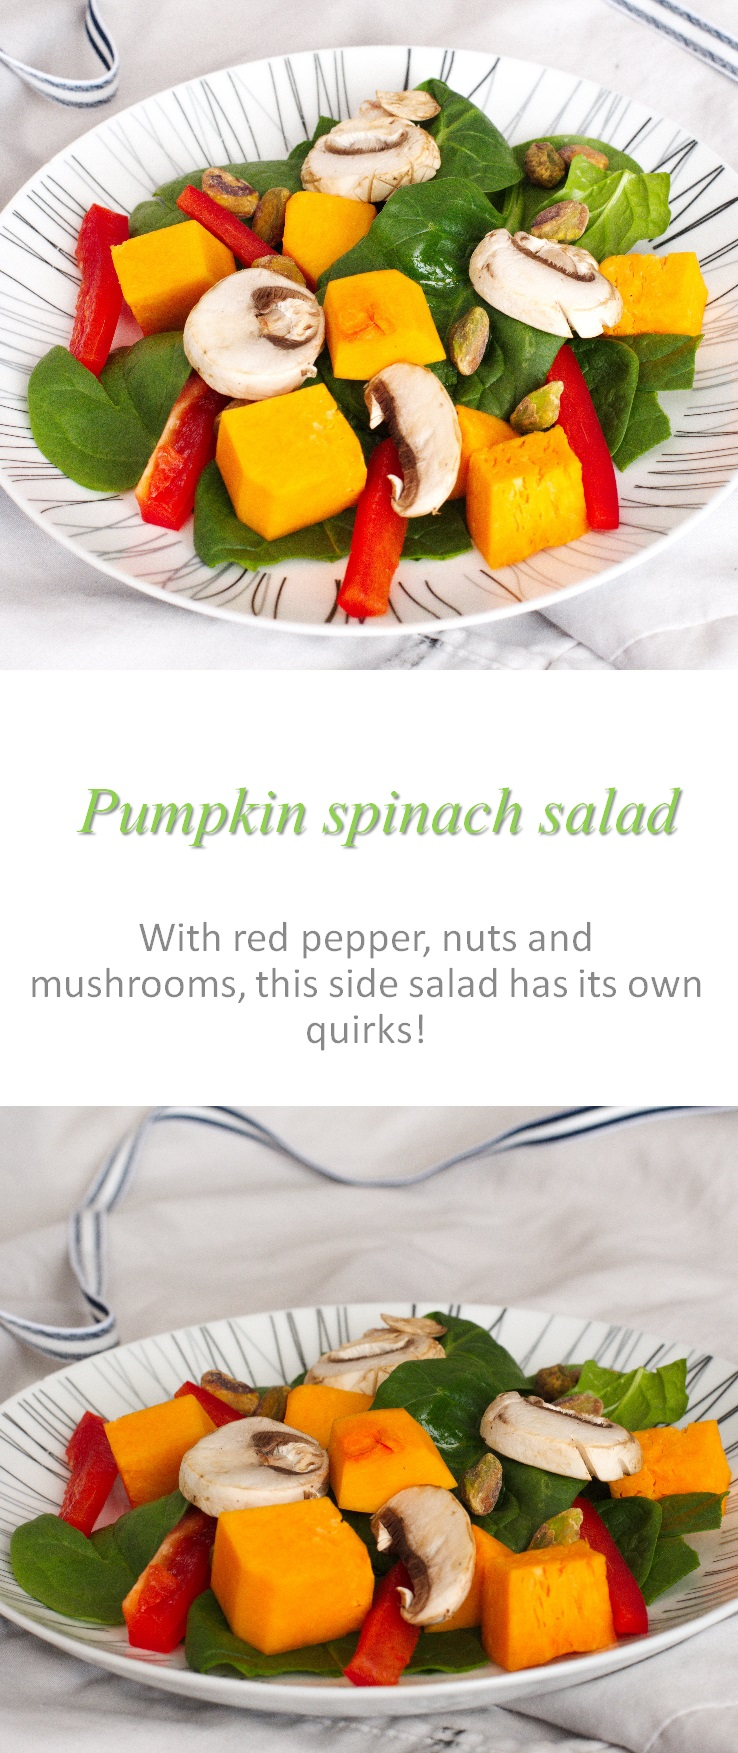 This pumpkin spinach salad is a deliciously different salad - with pumpkin, spinach, red peppers, mushrooms and nuts. #salad